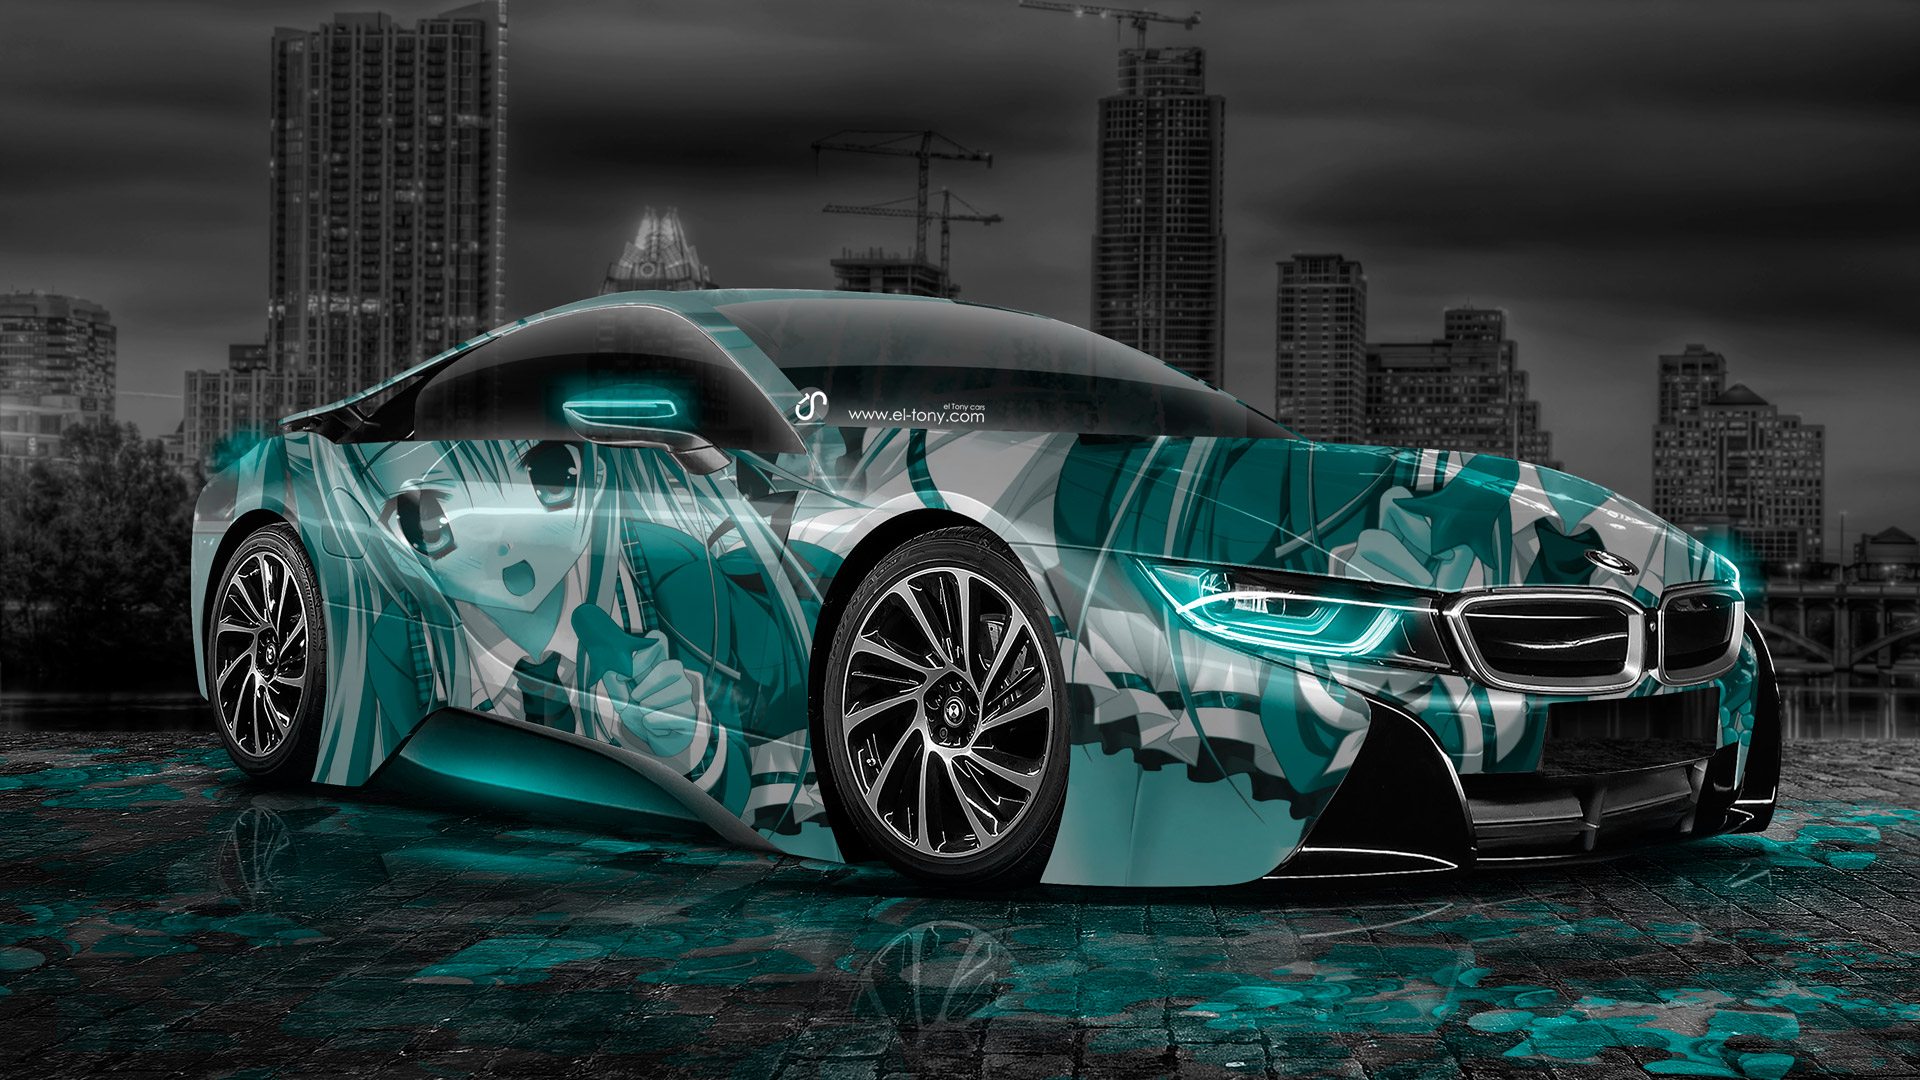 Bugatti Car Wallpaper Pink Bmw I8 Anime Aerography City Car 2014 El Tony